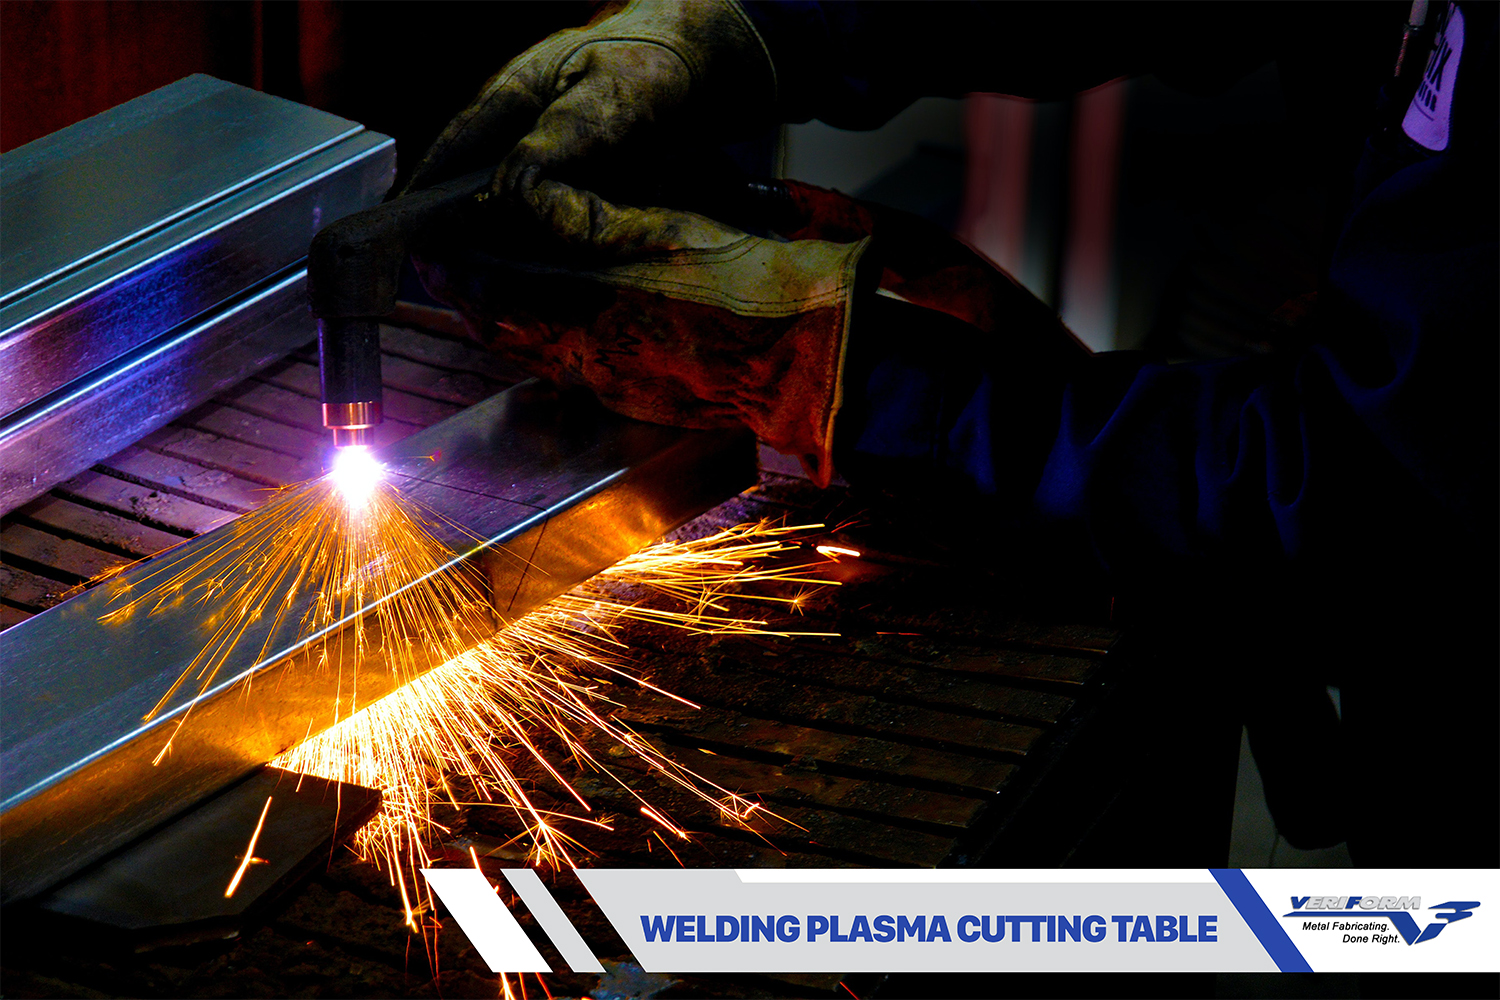 Welding Plasma Cutting Table: What It Can Do For You